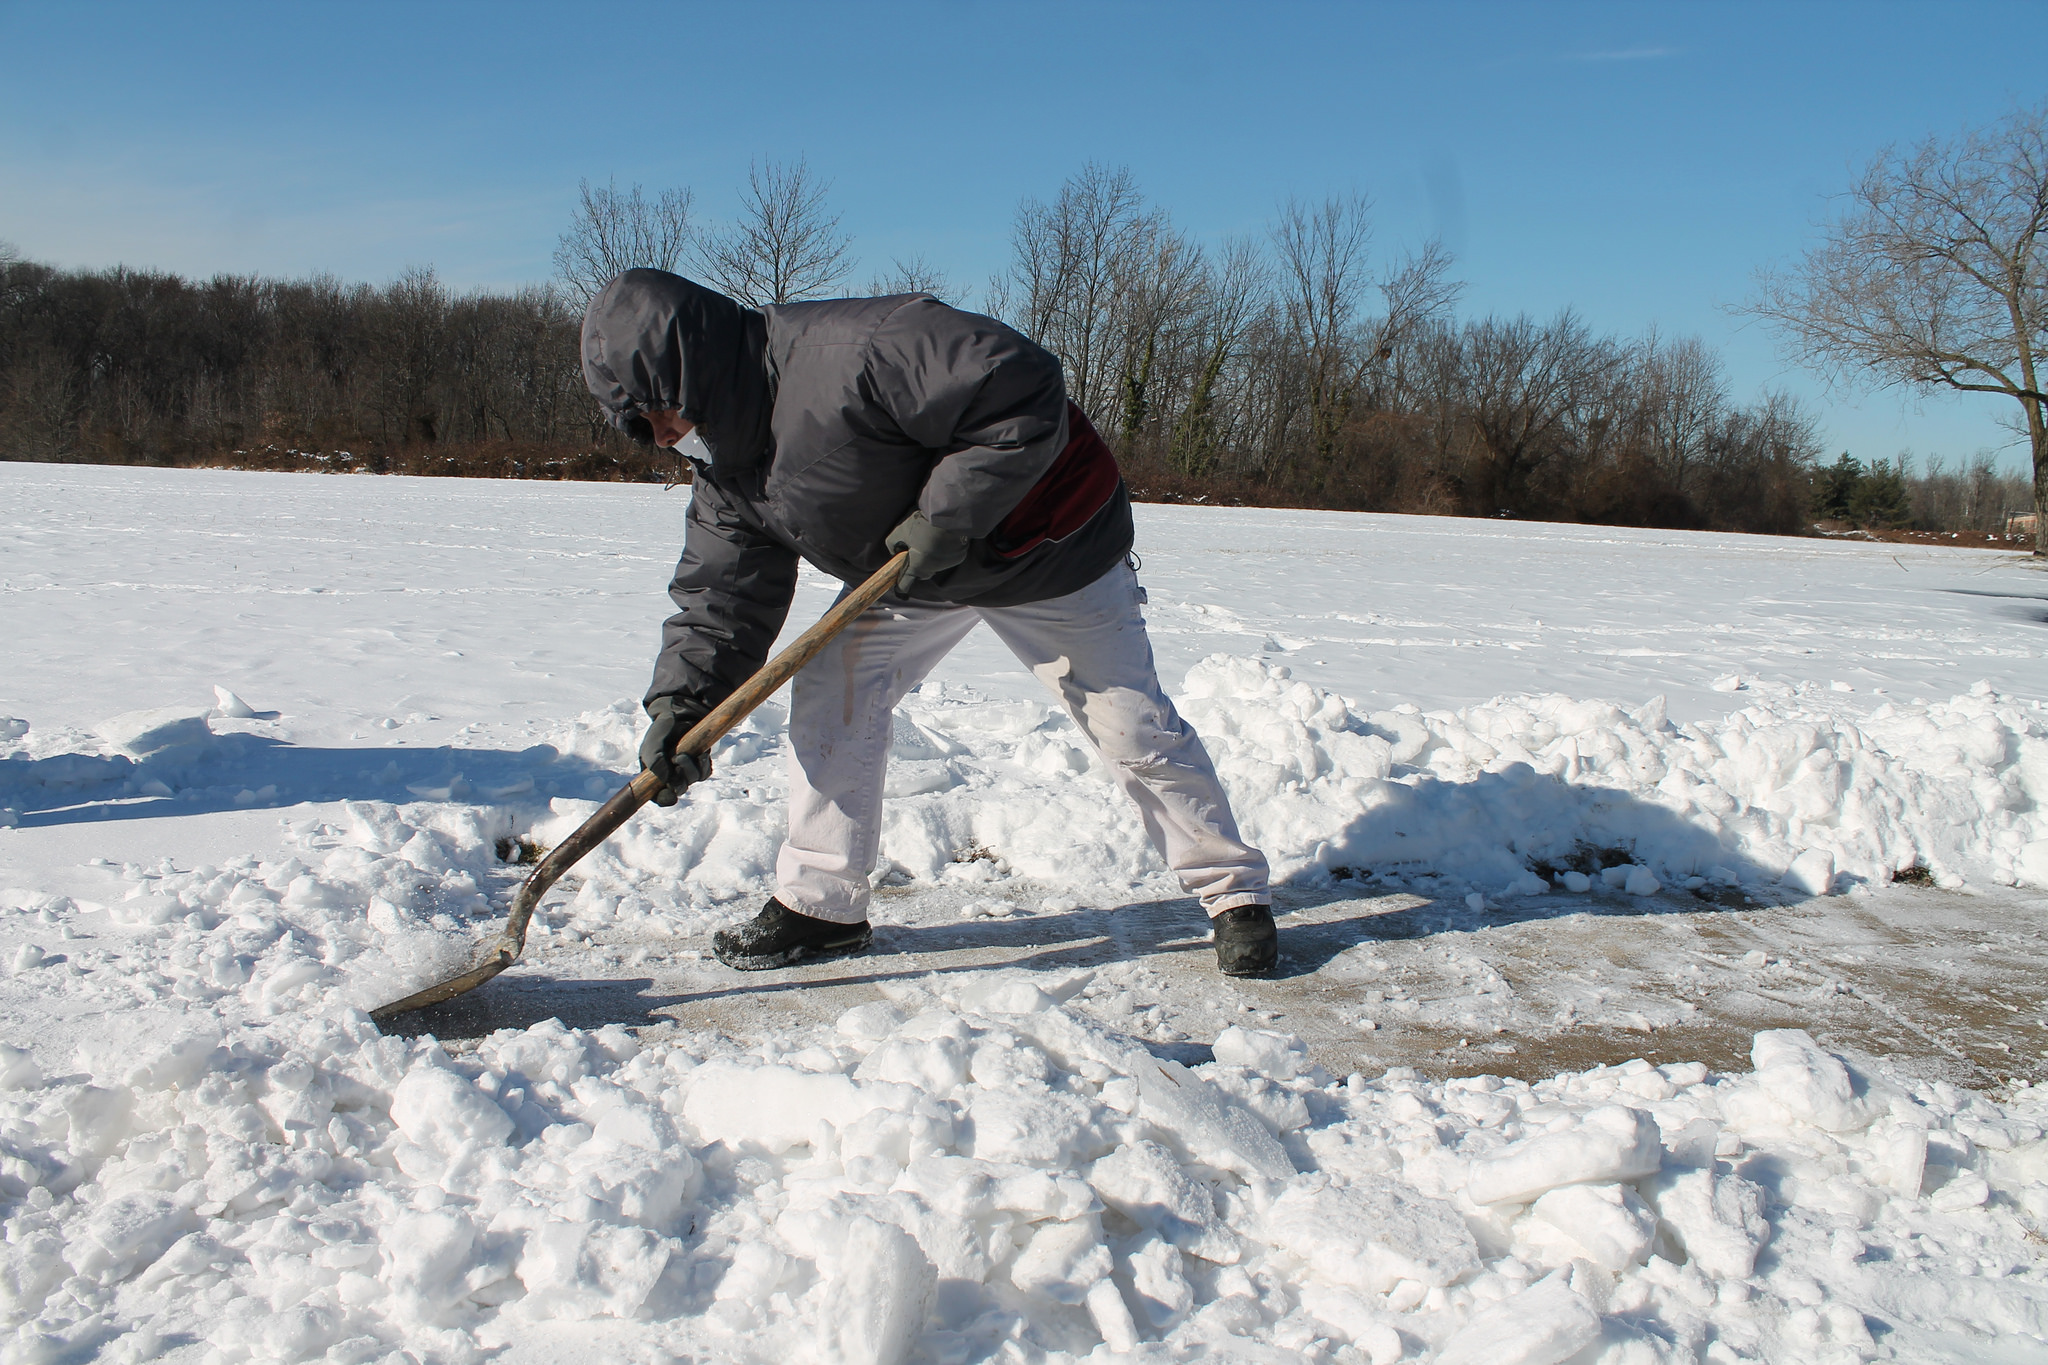 Shoveling snow. (Credit: Elvert Barnes/Flickr/File Photo)